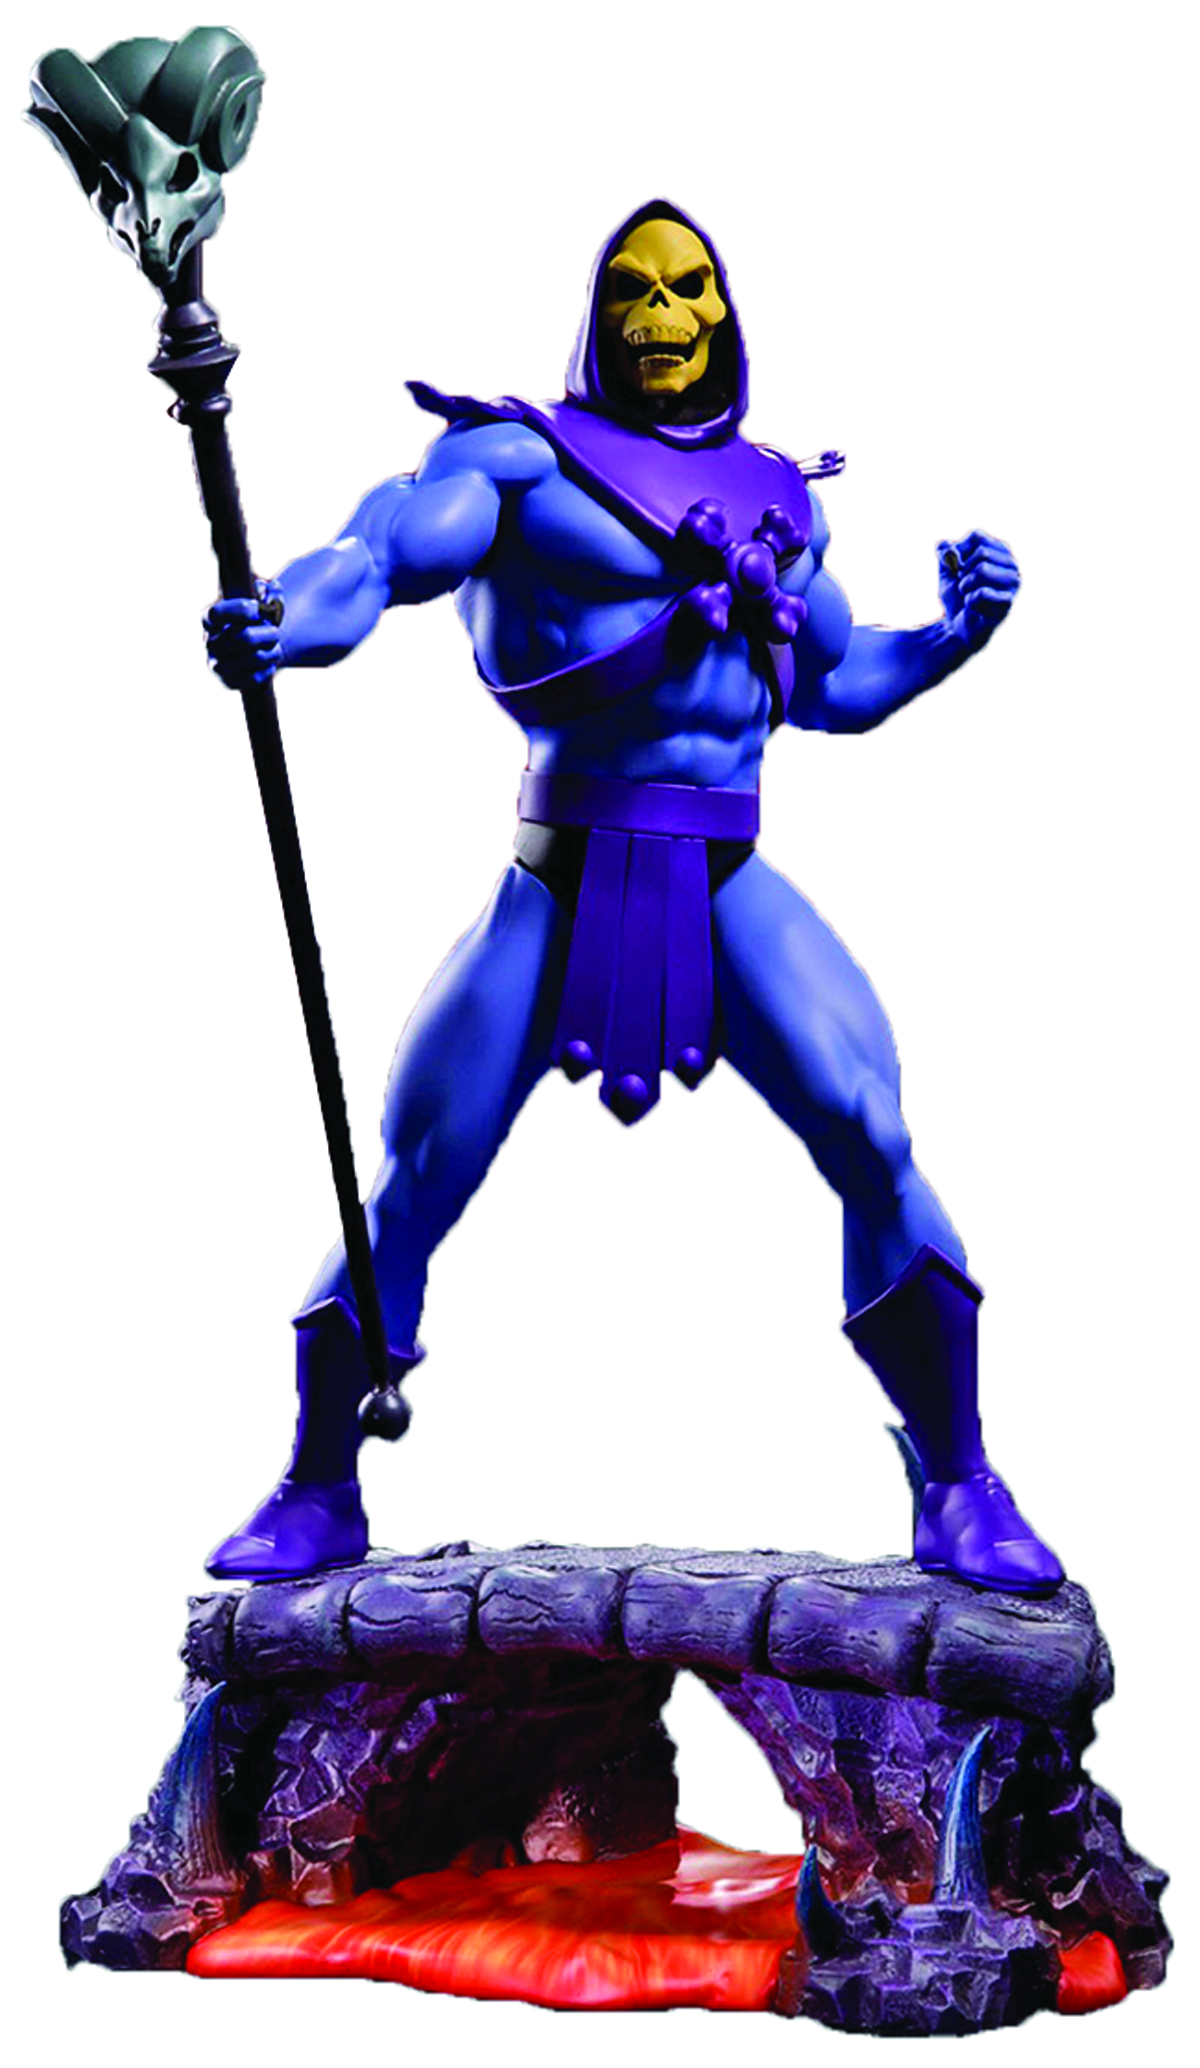 MASTERS O/T UNIVERSE SKELETOR 1/4 SCALE STATUE